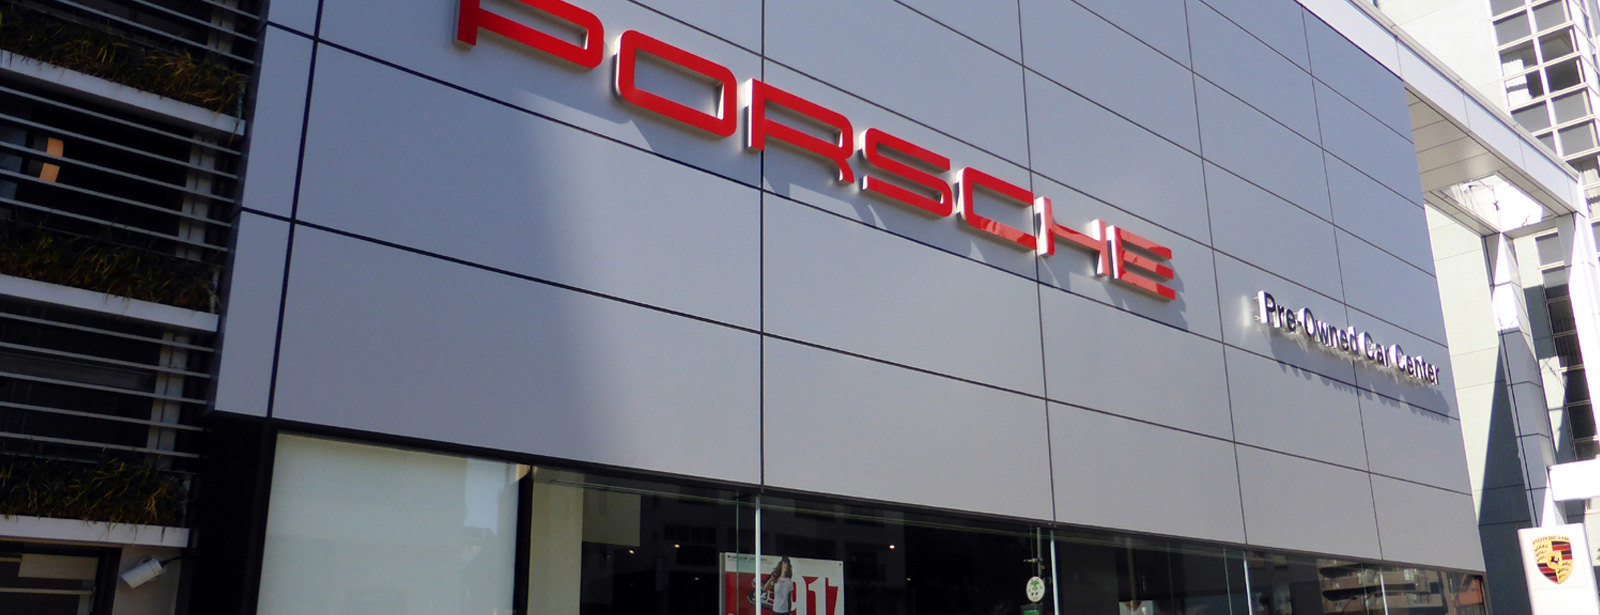 Porsche Center Koishikawa Pre-Owned Car Center.